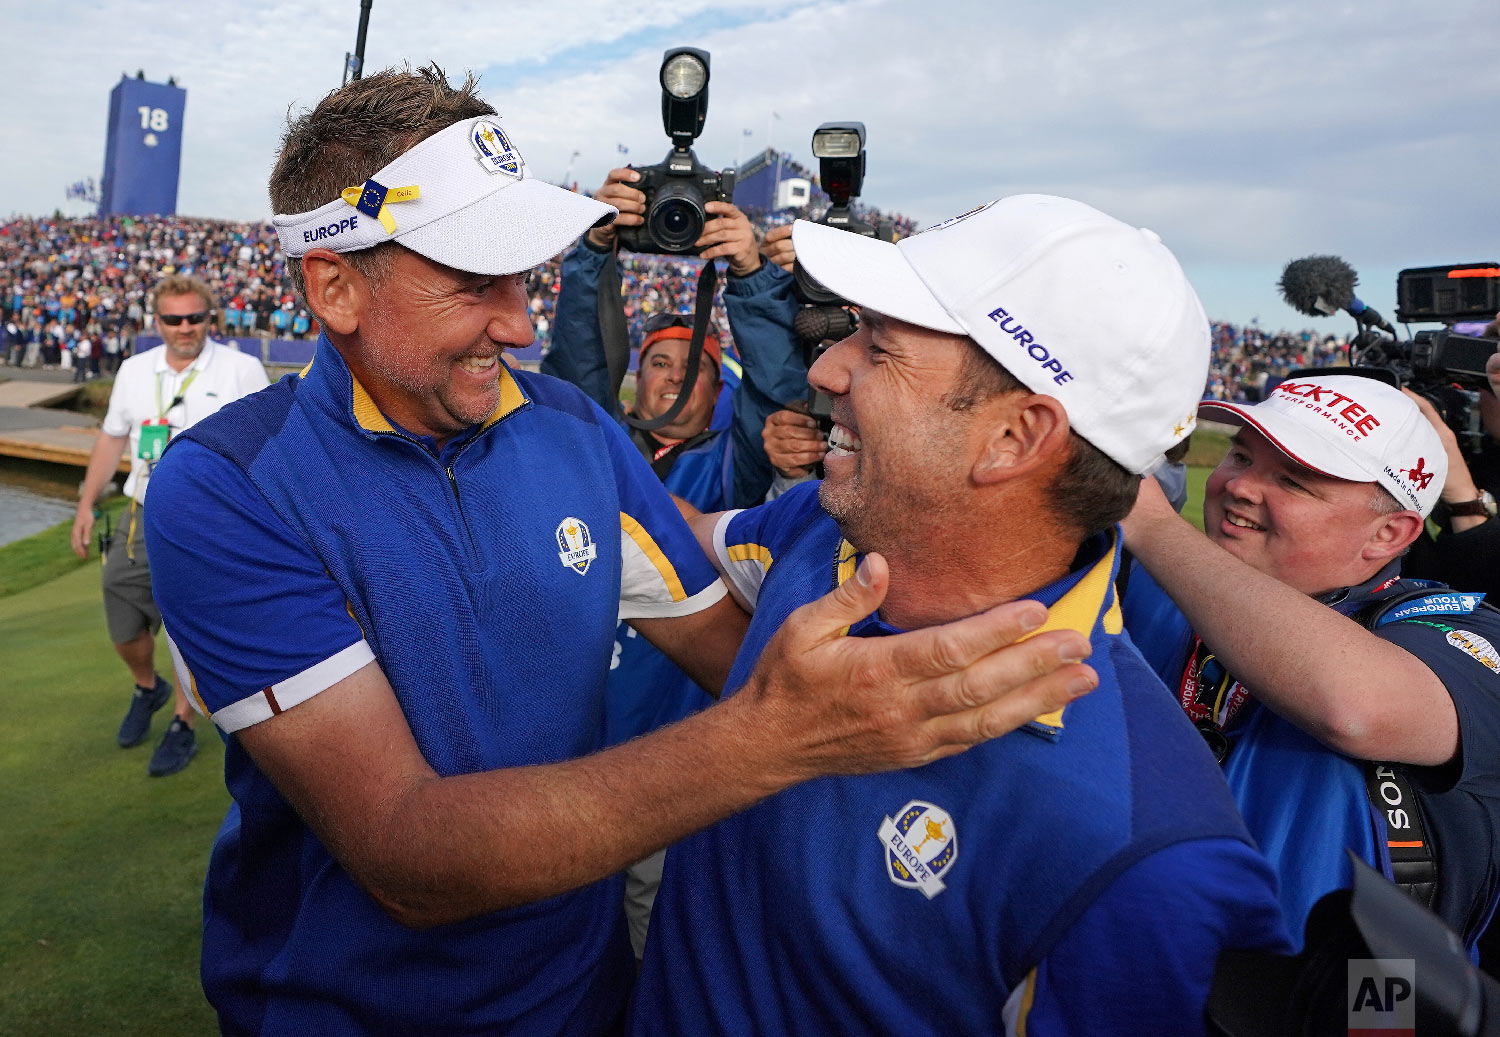 Europe's Sergio Garcia, right, celebrates with Ian Poulter after Europe won the Ryder Cup on the final day of the 42nd Ryder Cup at Le Golf National in Saint-Quentin-en-Yvelines, outside Paris, France, on Sept. 30, 2018. (AP Photo/Laurent Cipriani)